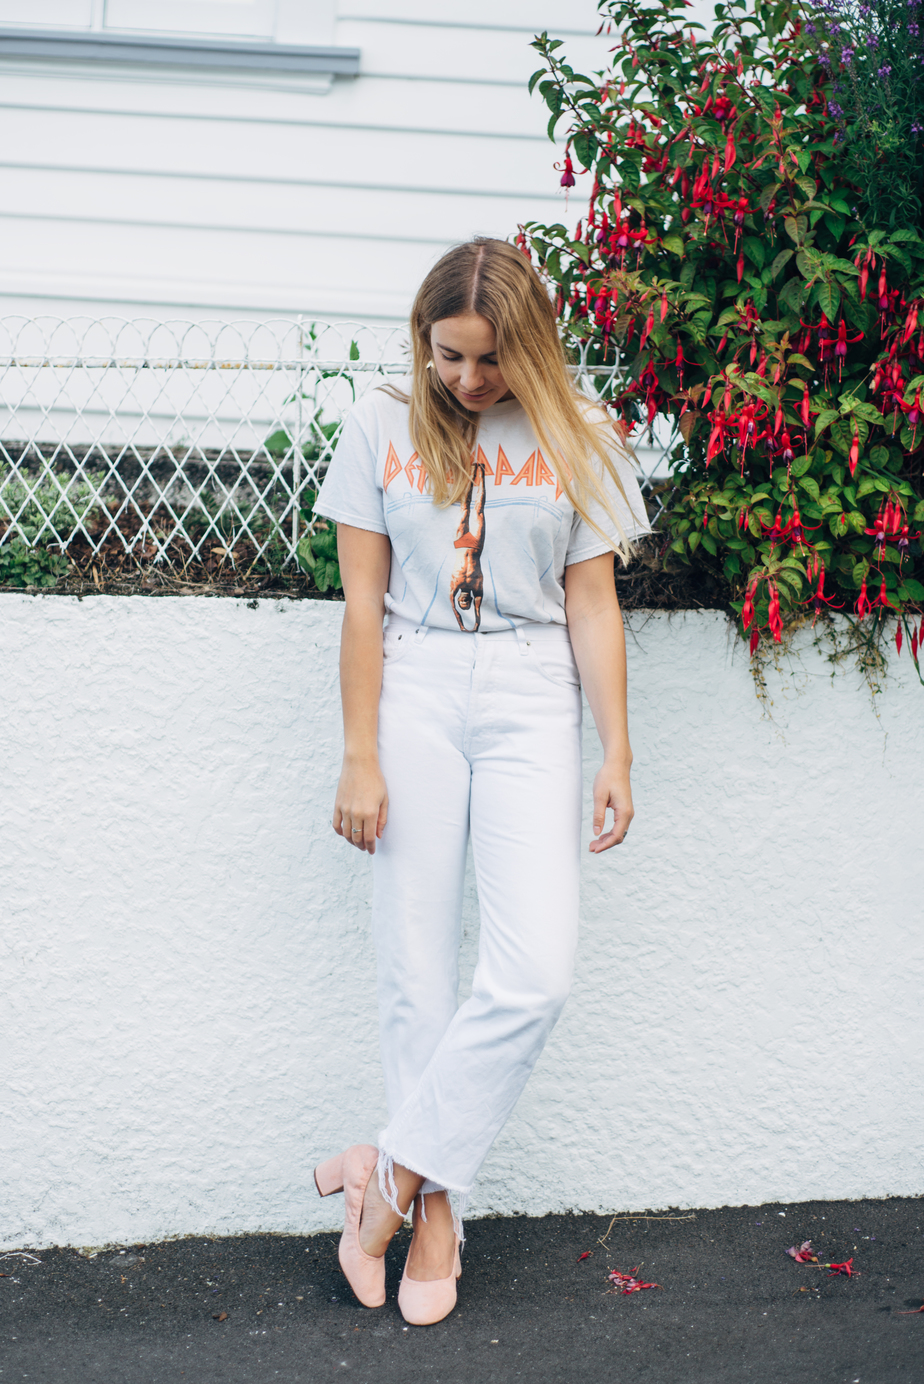 Brandy Melville Tshirt, Vintage Levi Jeans, ASOS Simone Heels and RUBY Earrings | New Zealand Fashion Blogger | Stolen Inspiration